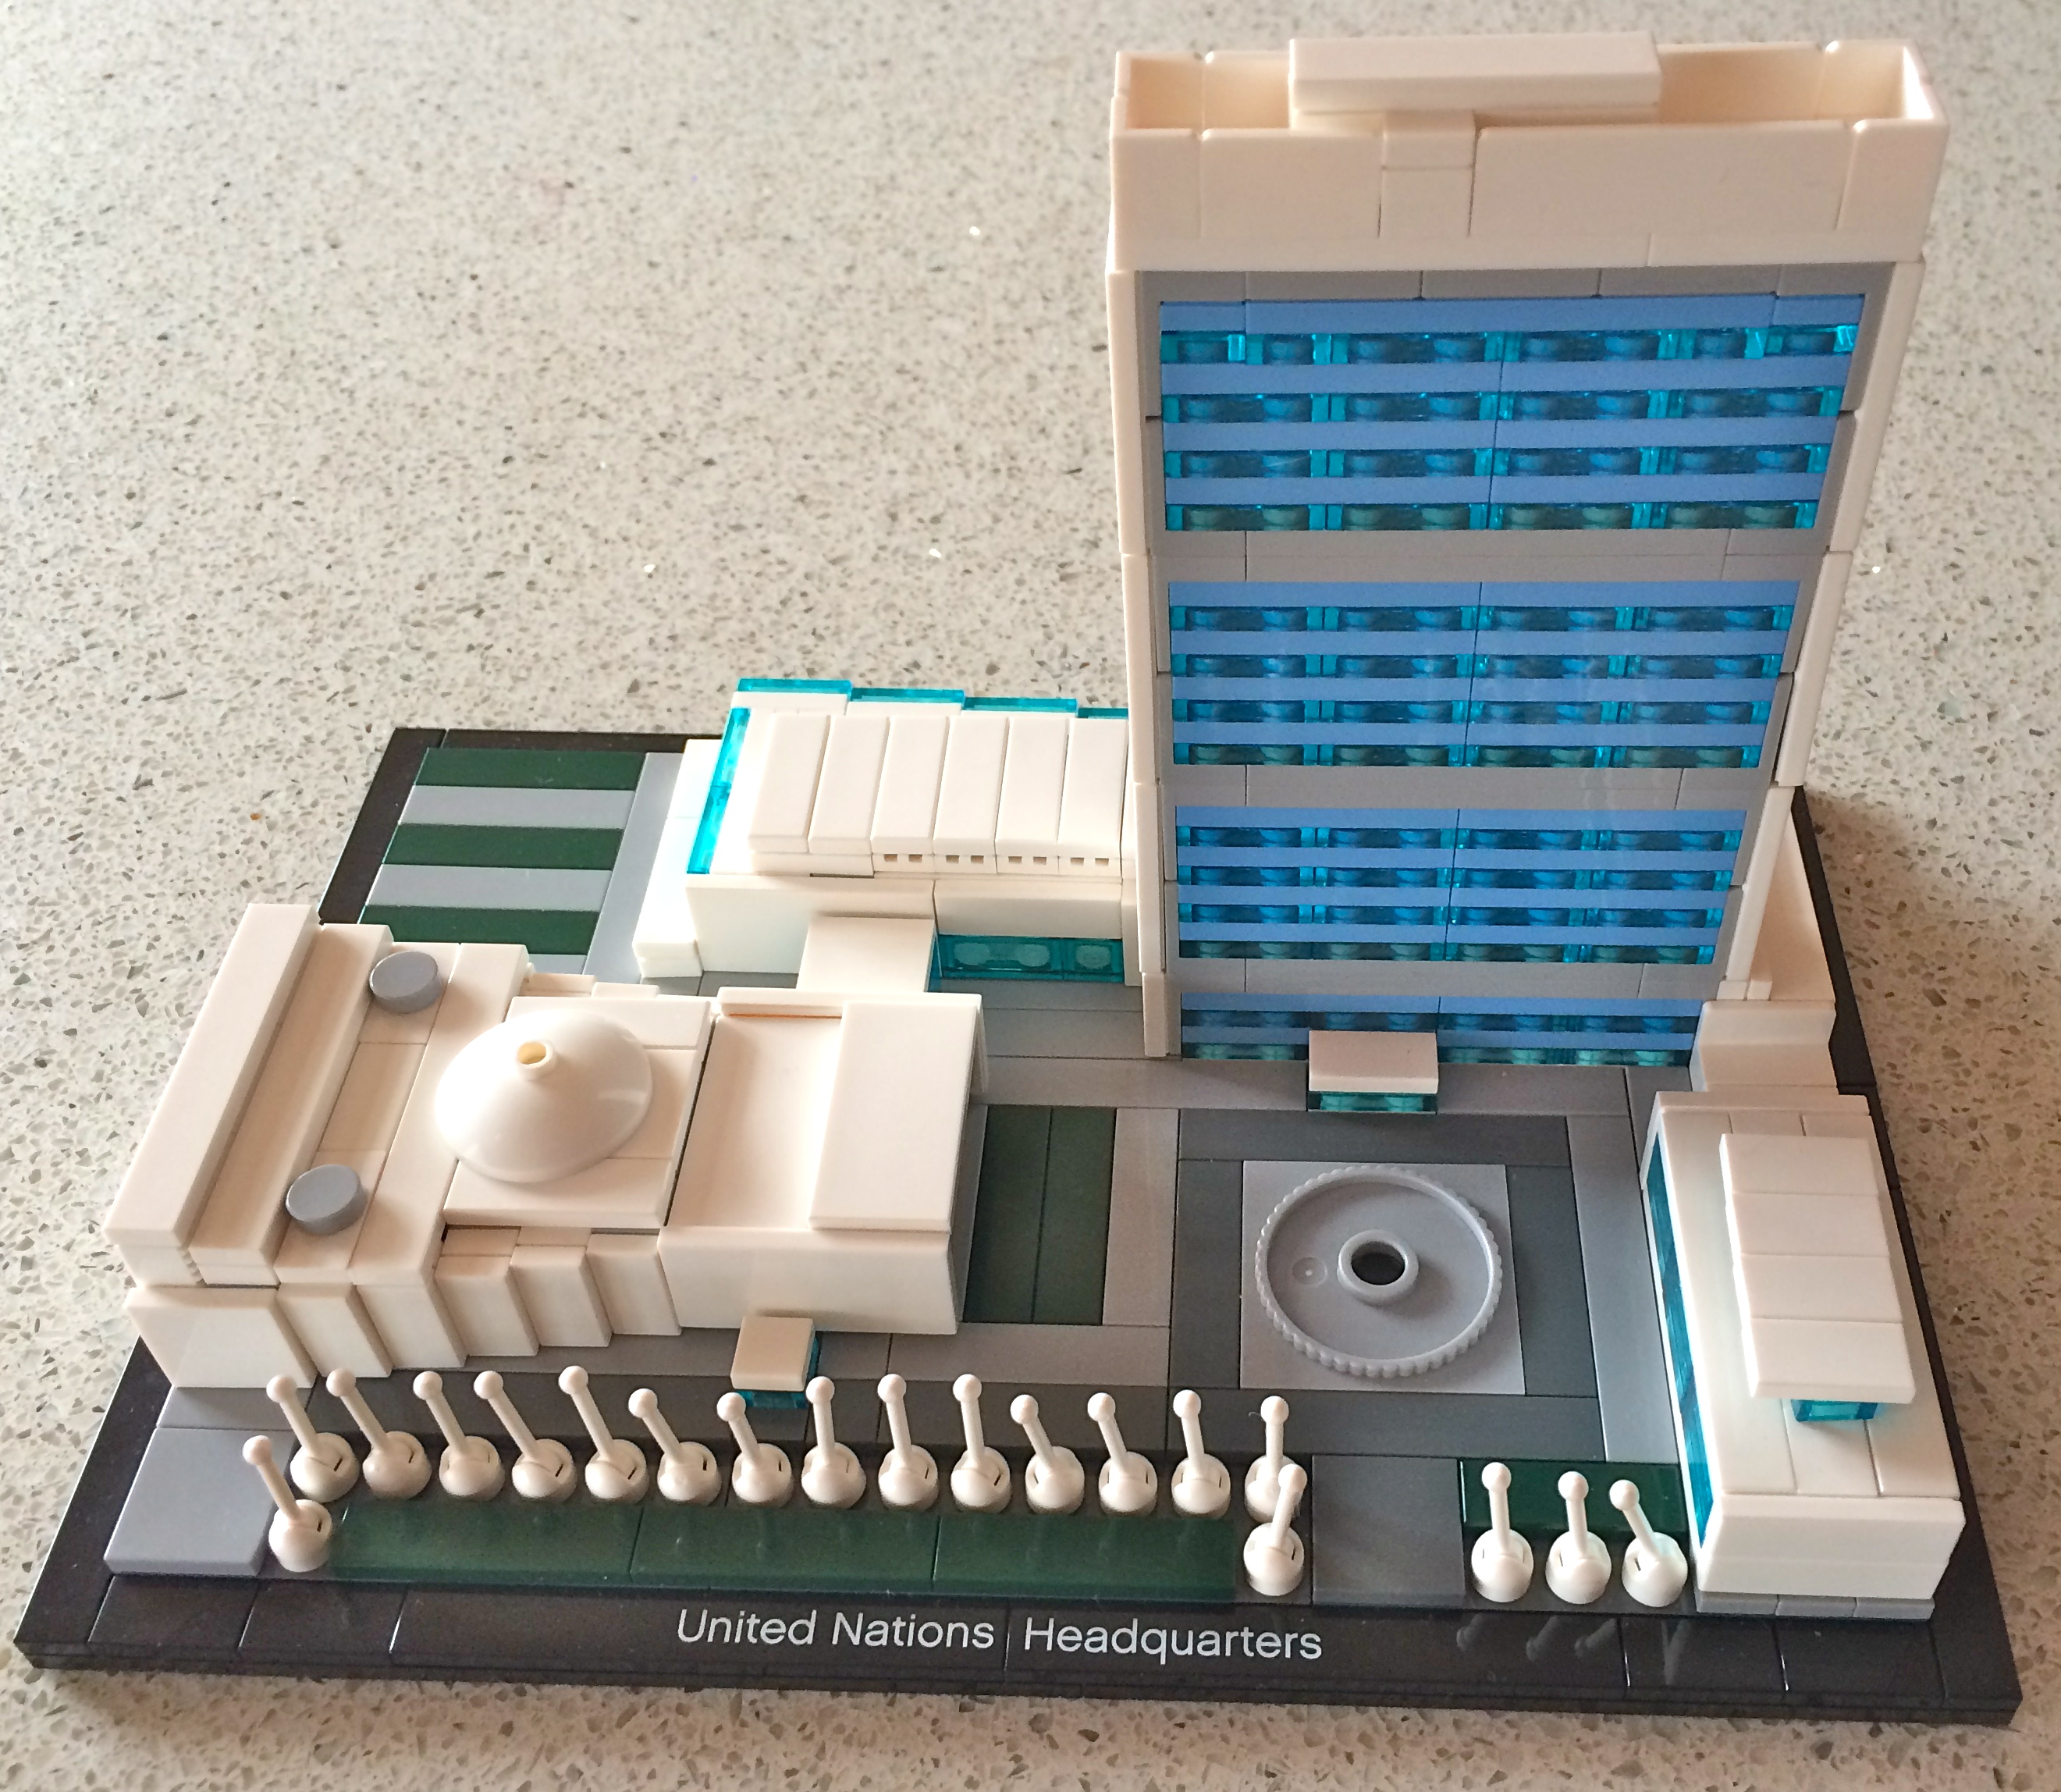 Lego Architecture United Nations Building